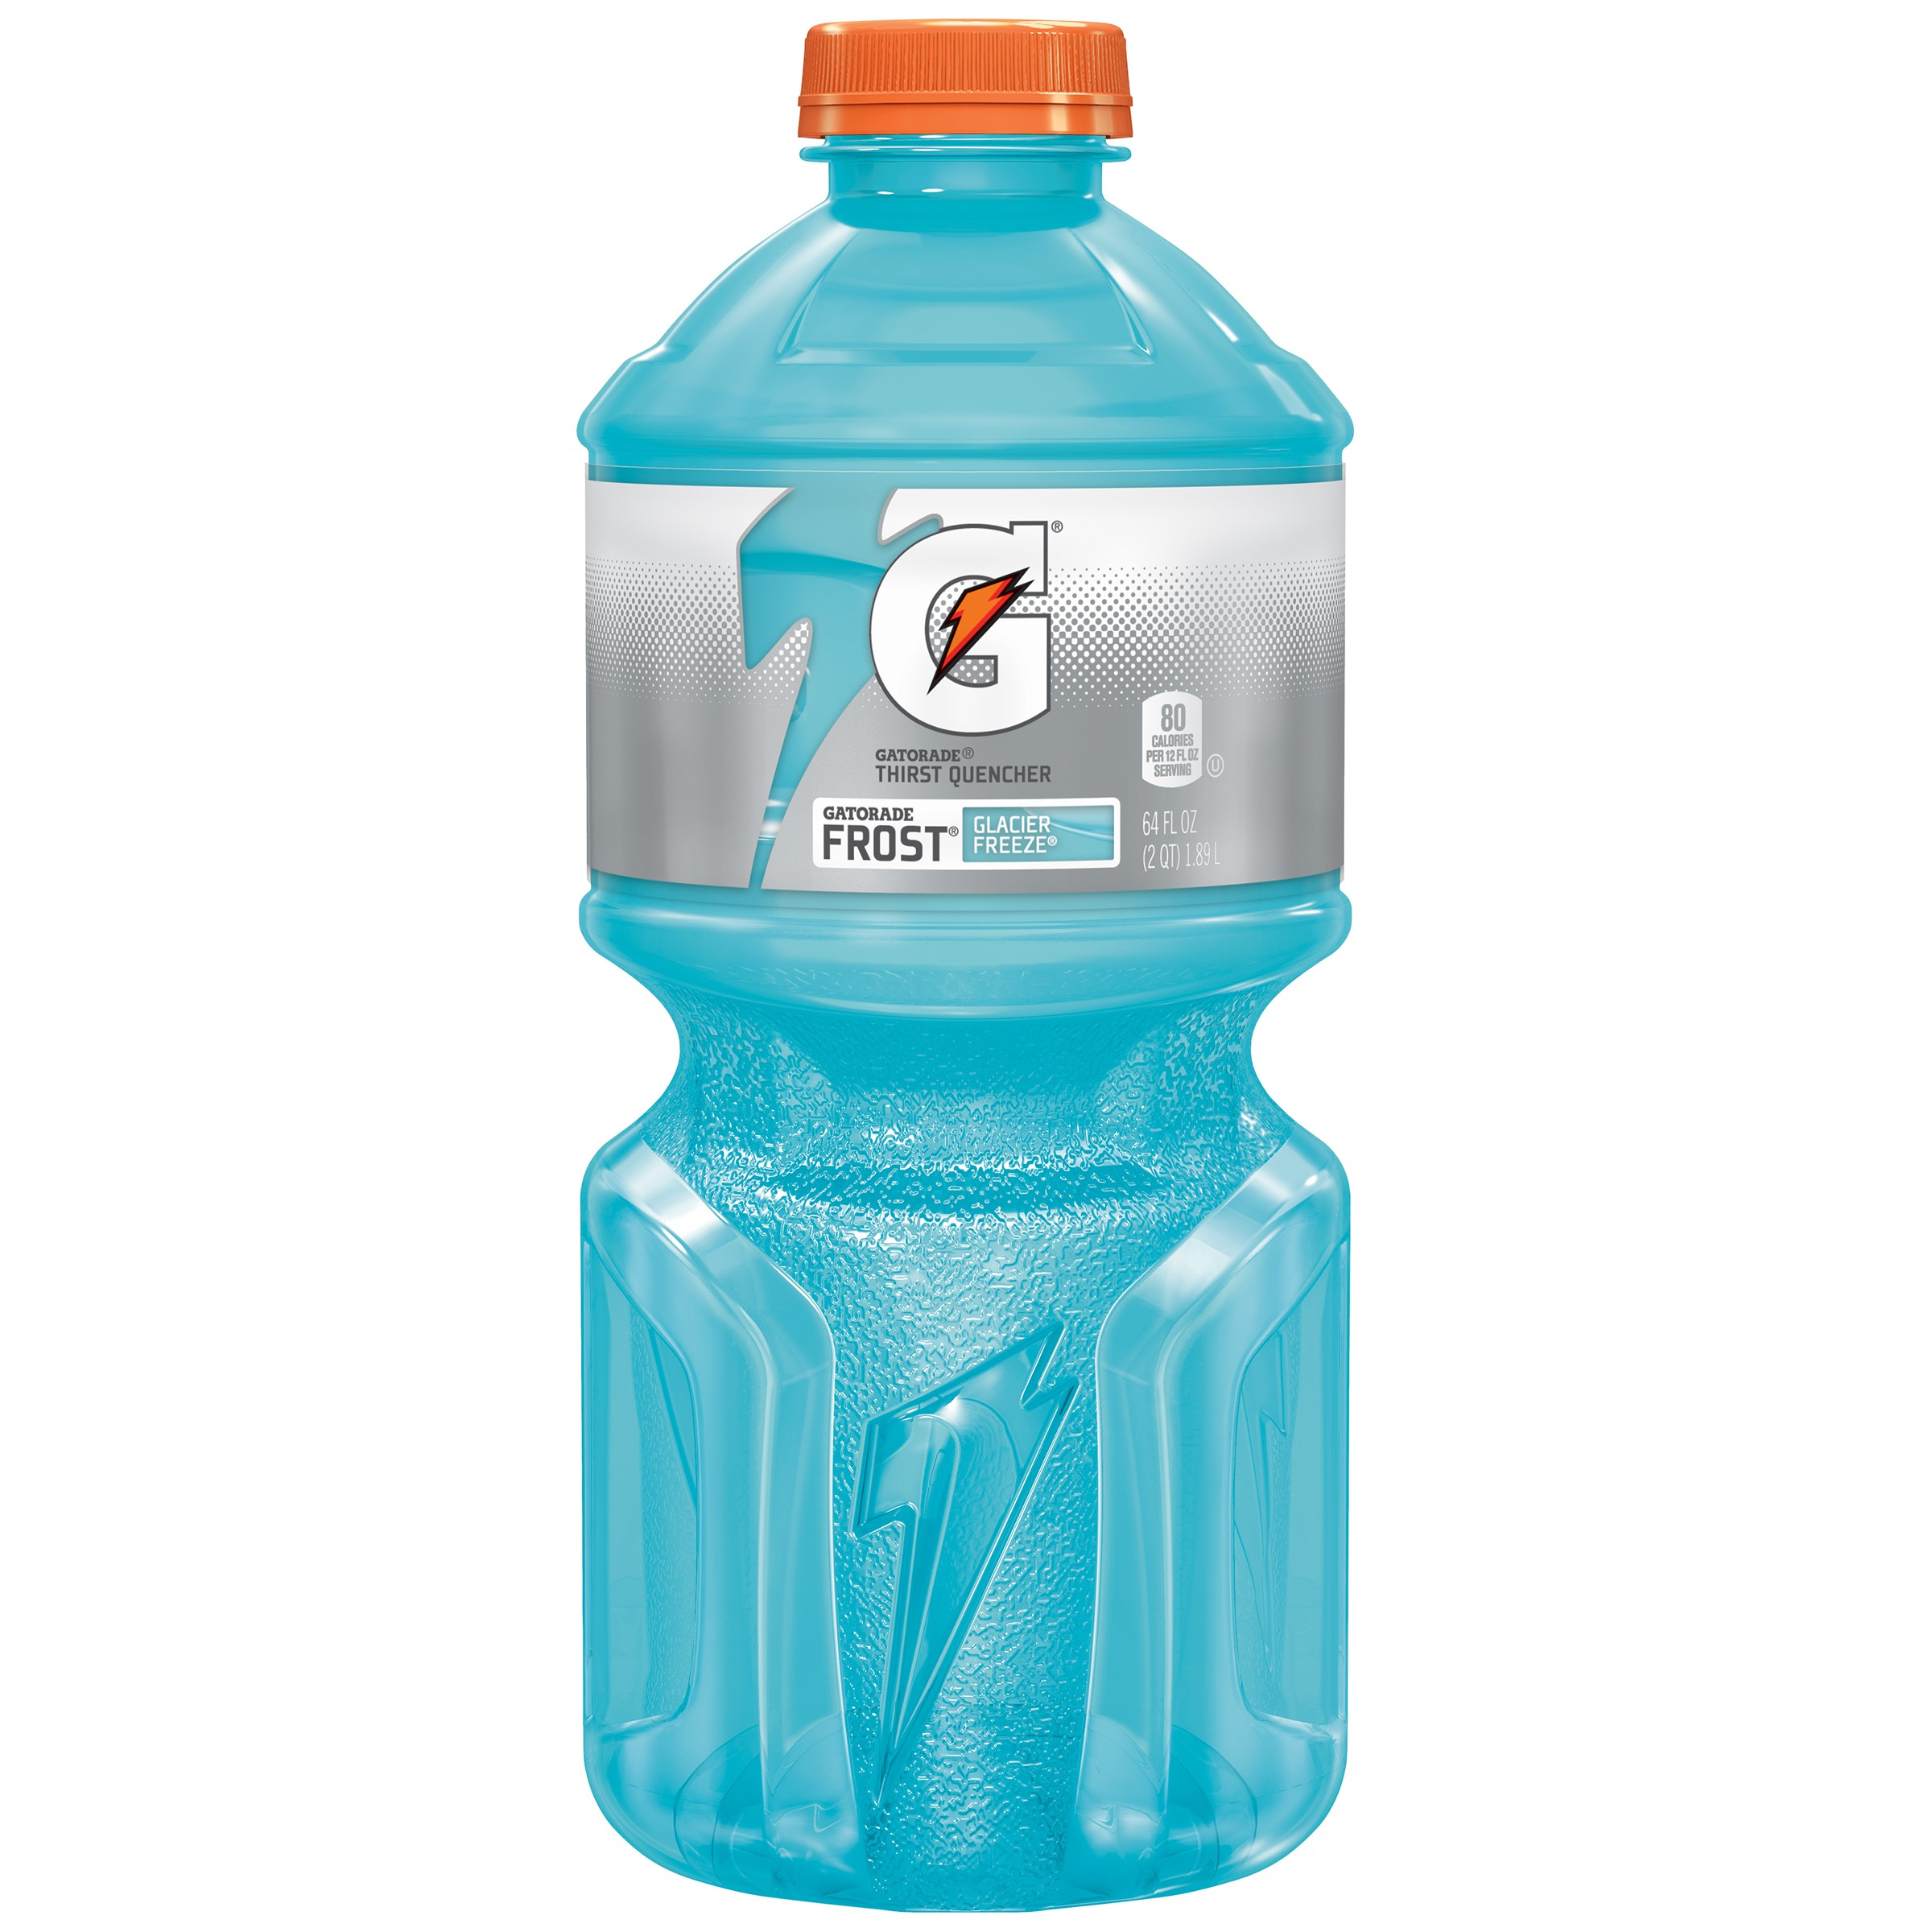 Gatorade G Frost Glacier Freeze Thirst Quencher Sports Drink, 64 Oz